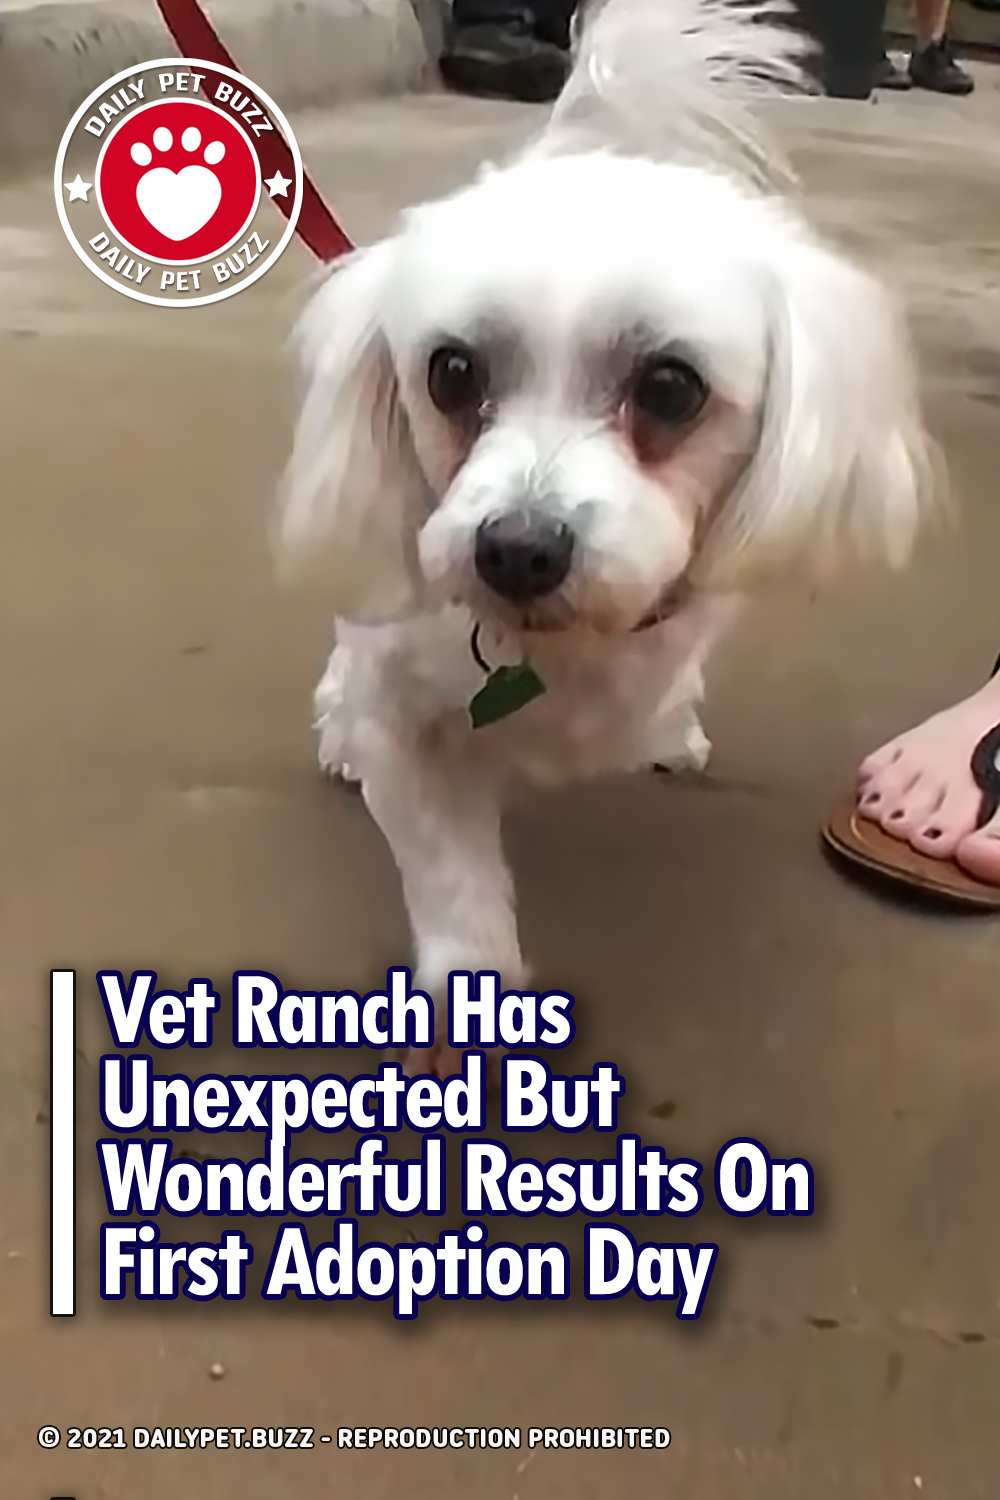 Vet Ranch Has Unexpected But Wonderful Results On First Adoption Day